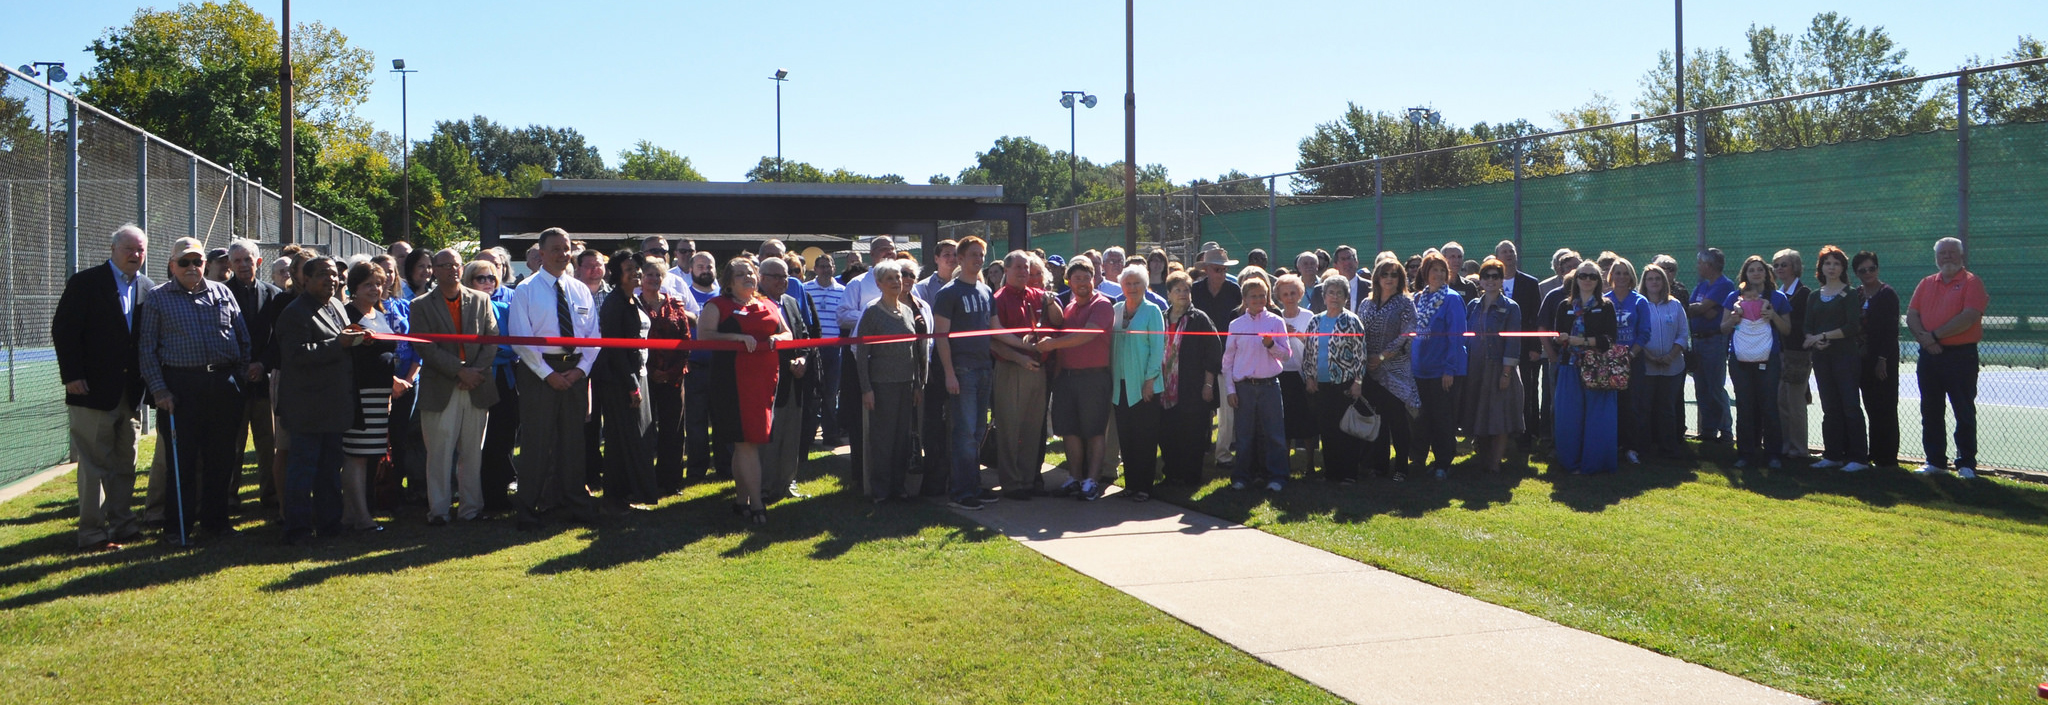 TC Foundation hosts dedication ceremony in honor of Cindy Cook Sandefur